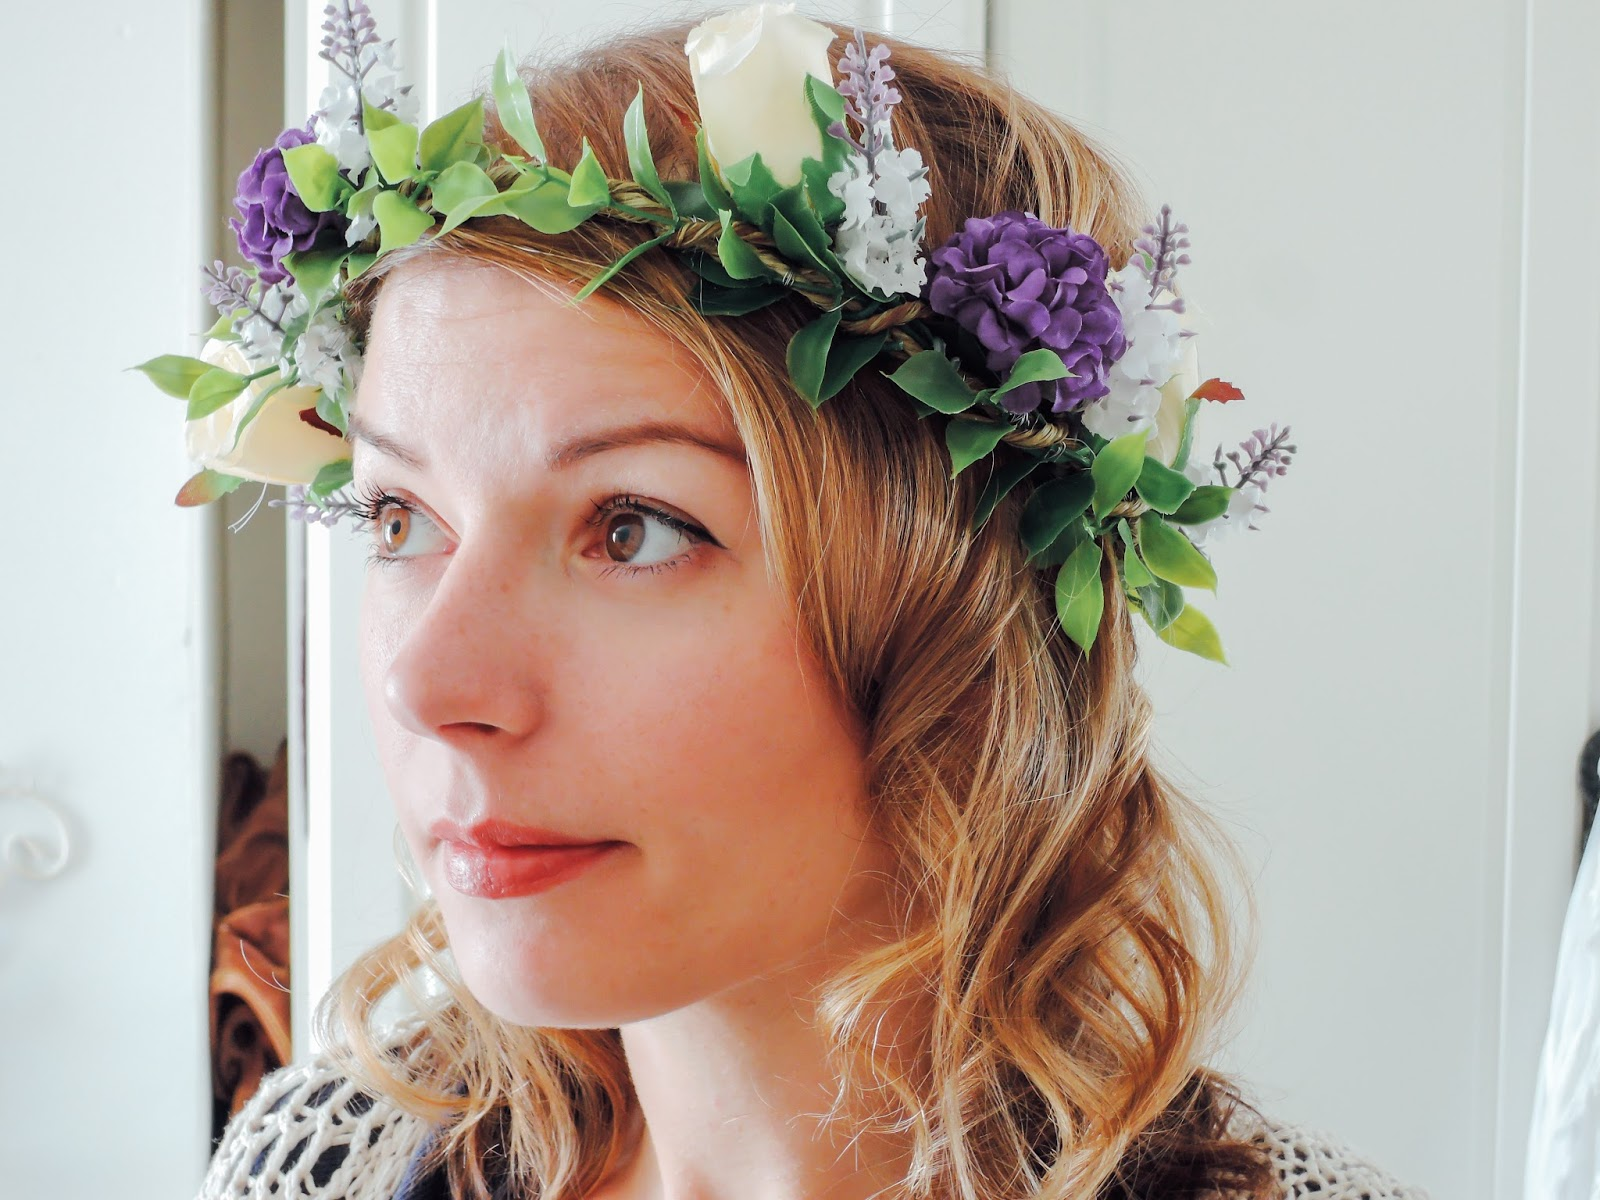 A handmade cottage how to make a flower crown for weddings how to make a flower crown for weddings festivals and flowers girls izmirmasajfo